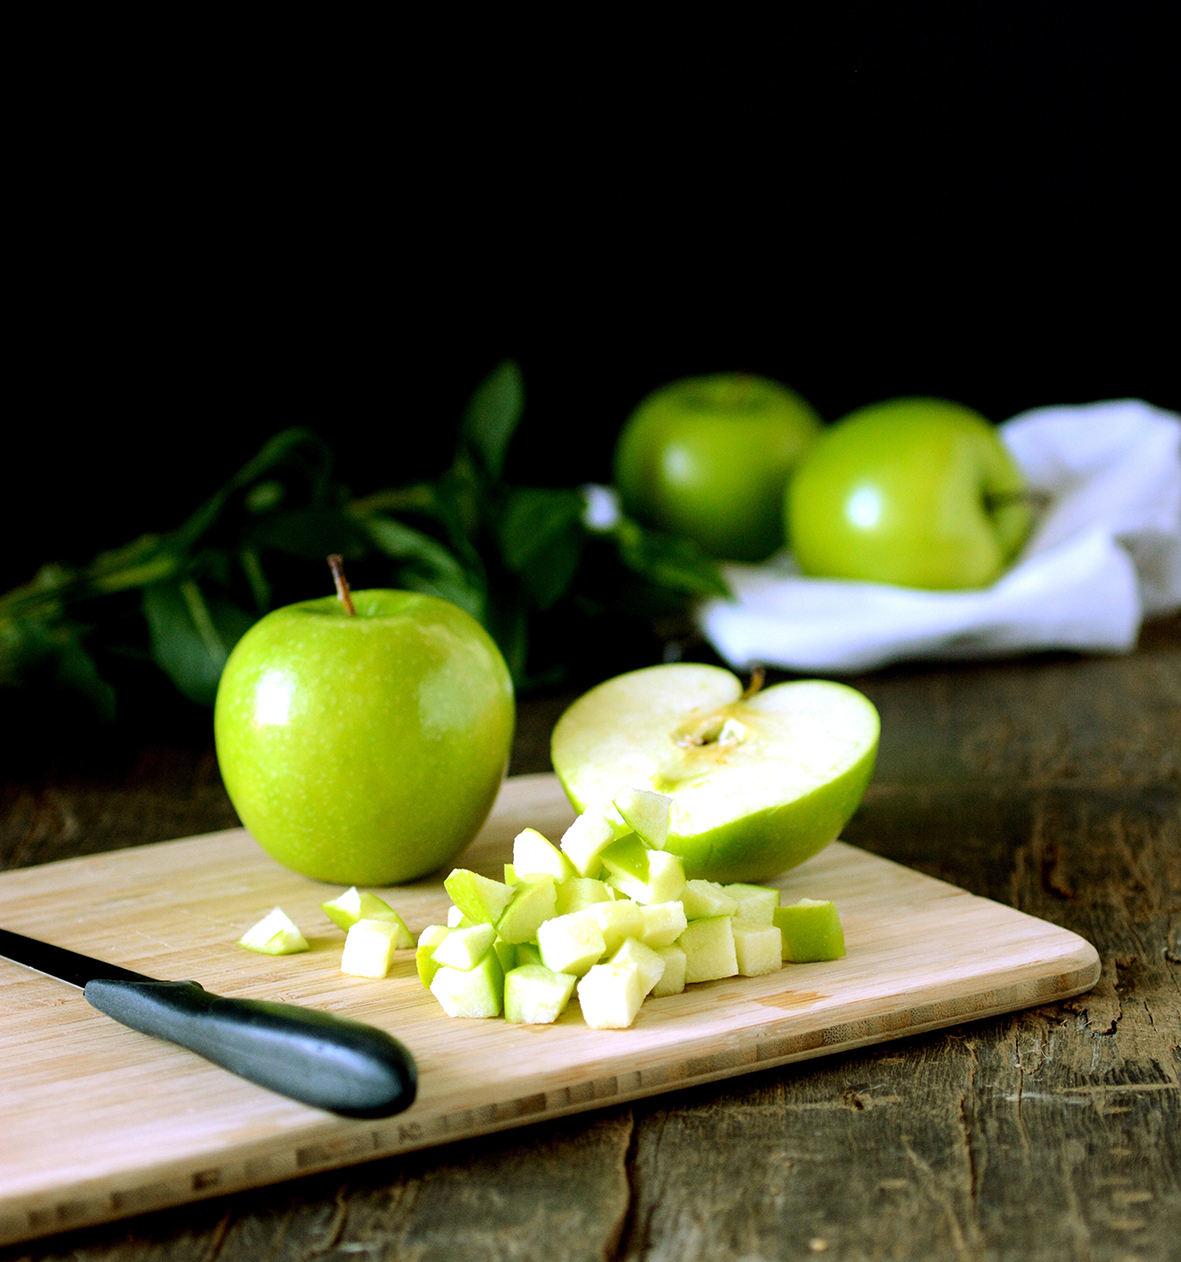 Green apples 2